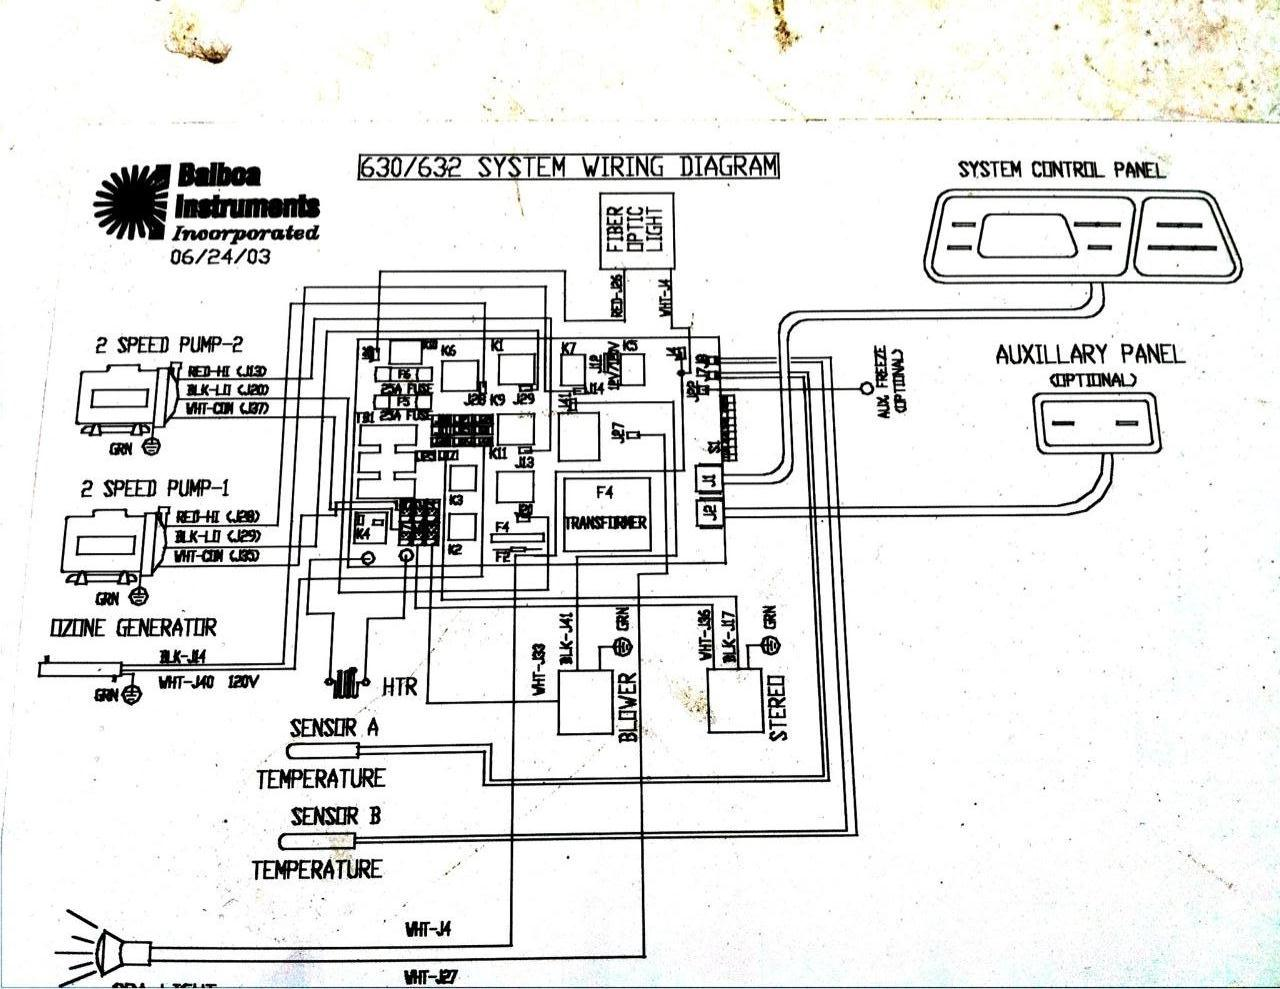 balboa wiring diagram peripheral nerves labeled i have a 2003 coleman spas model 482dlx it has two motors